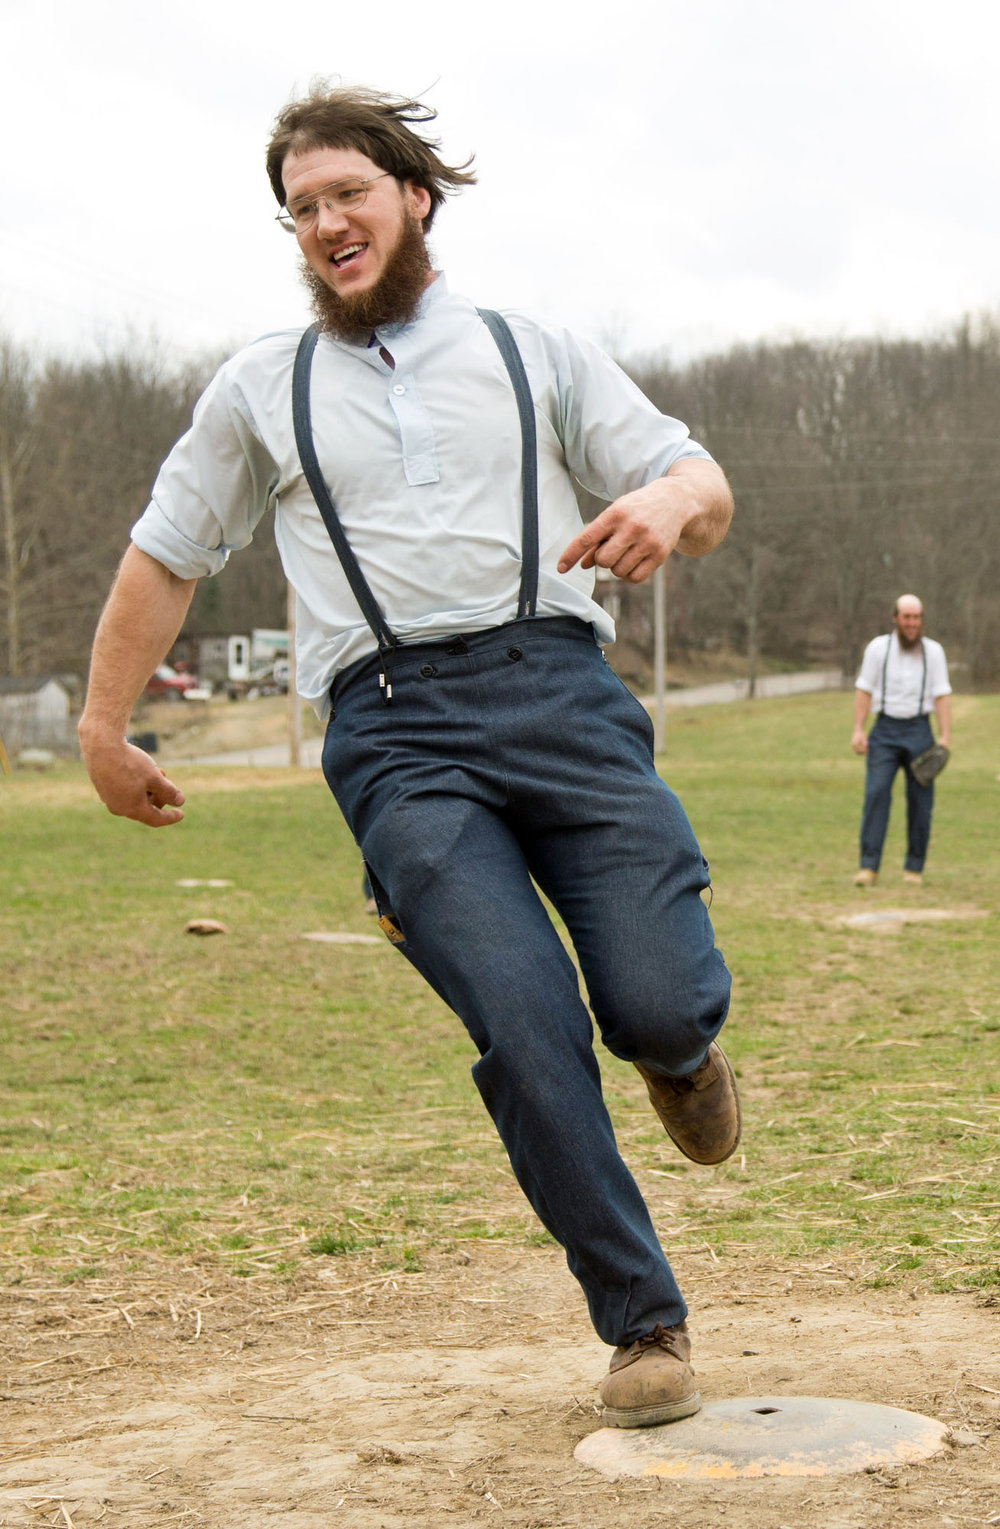 Description of . Freeman Burkholder crosses home plate during a game of baseball at the farewell picnic in Bergholz, Ohio on Tuesday, April 9, 2013.  Burkholder was sentenced to prison for his part in the hair and beard cutting scandal against other members of the Amish community. (AP Photo/Scott R. Galvin)